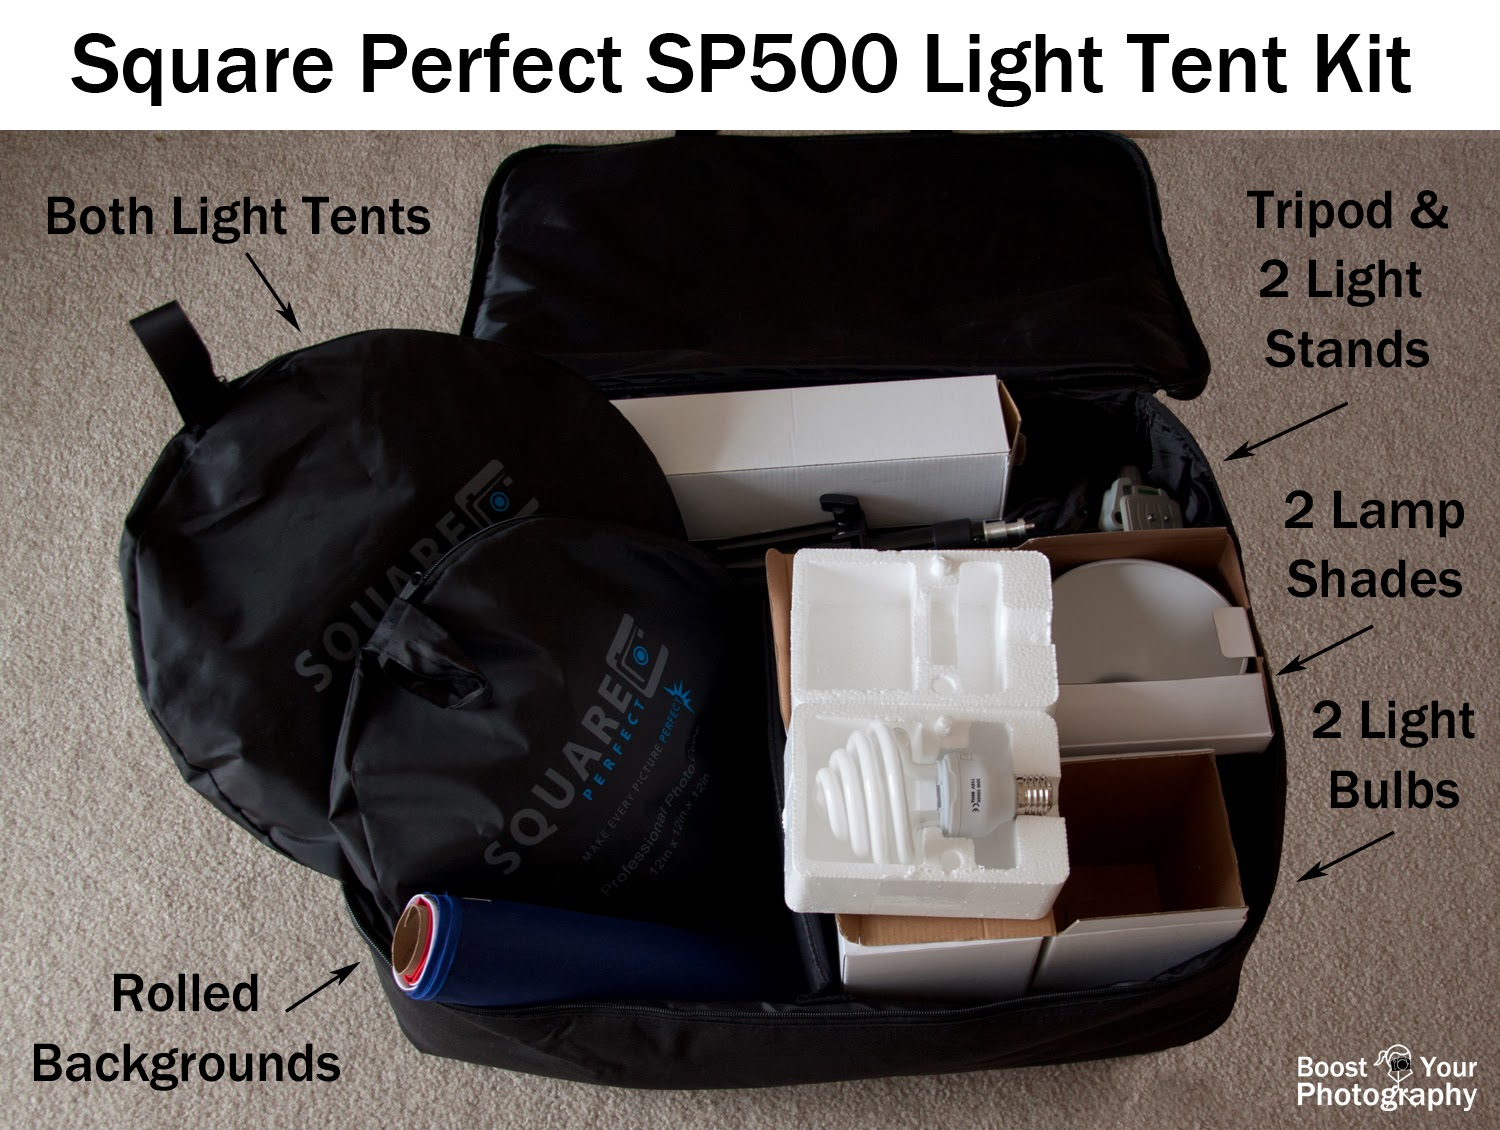 Square Perfect SP500 Light Tent Kit | Boost Your Photography